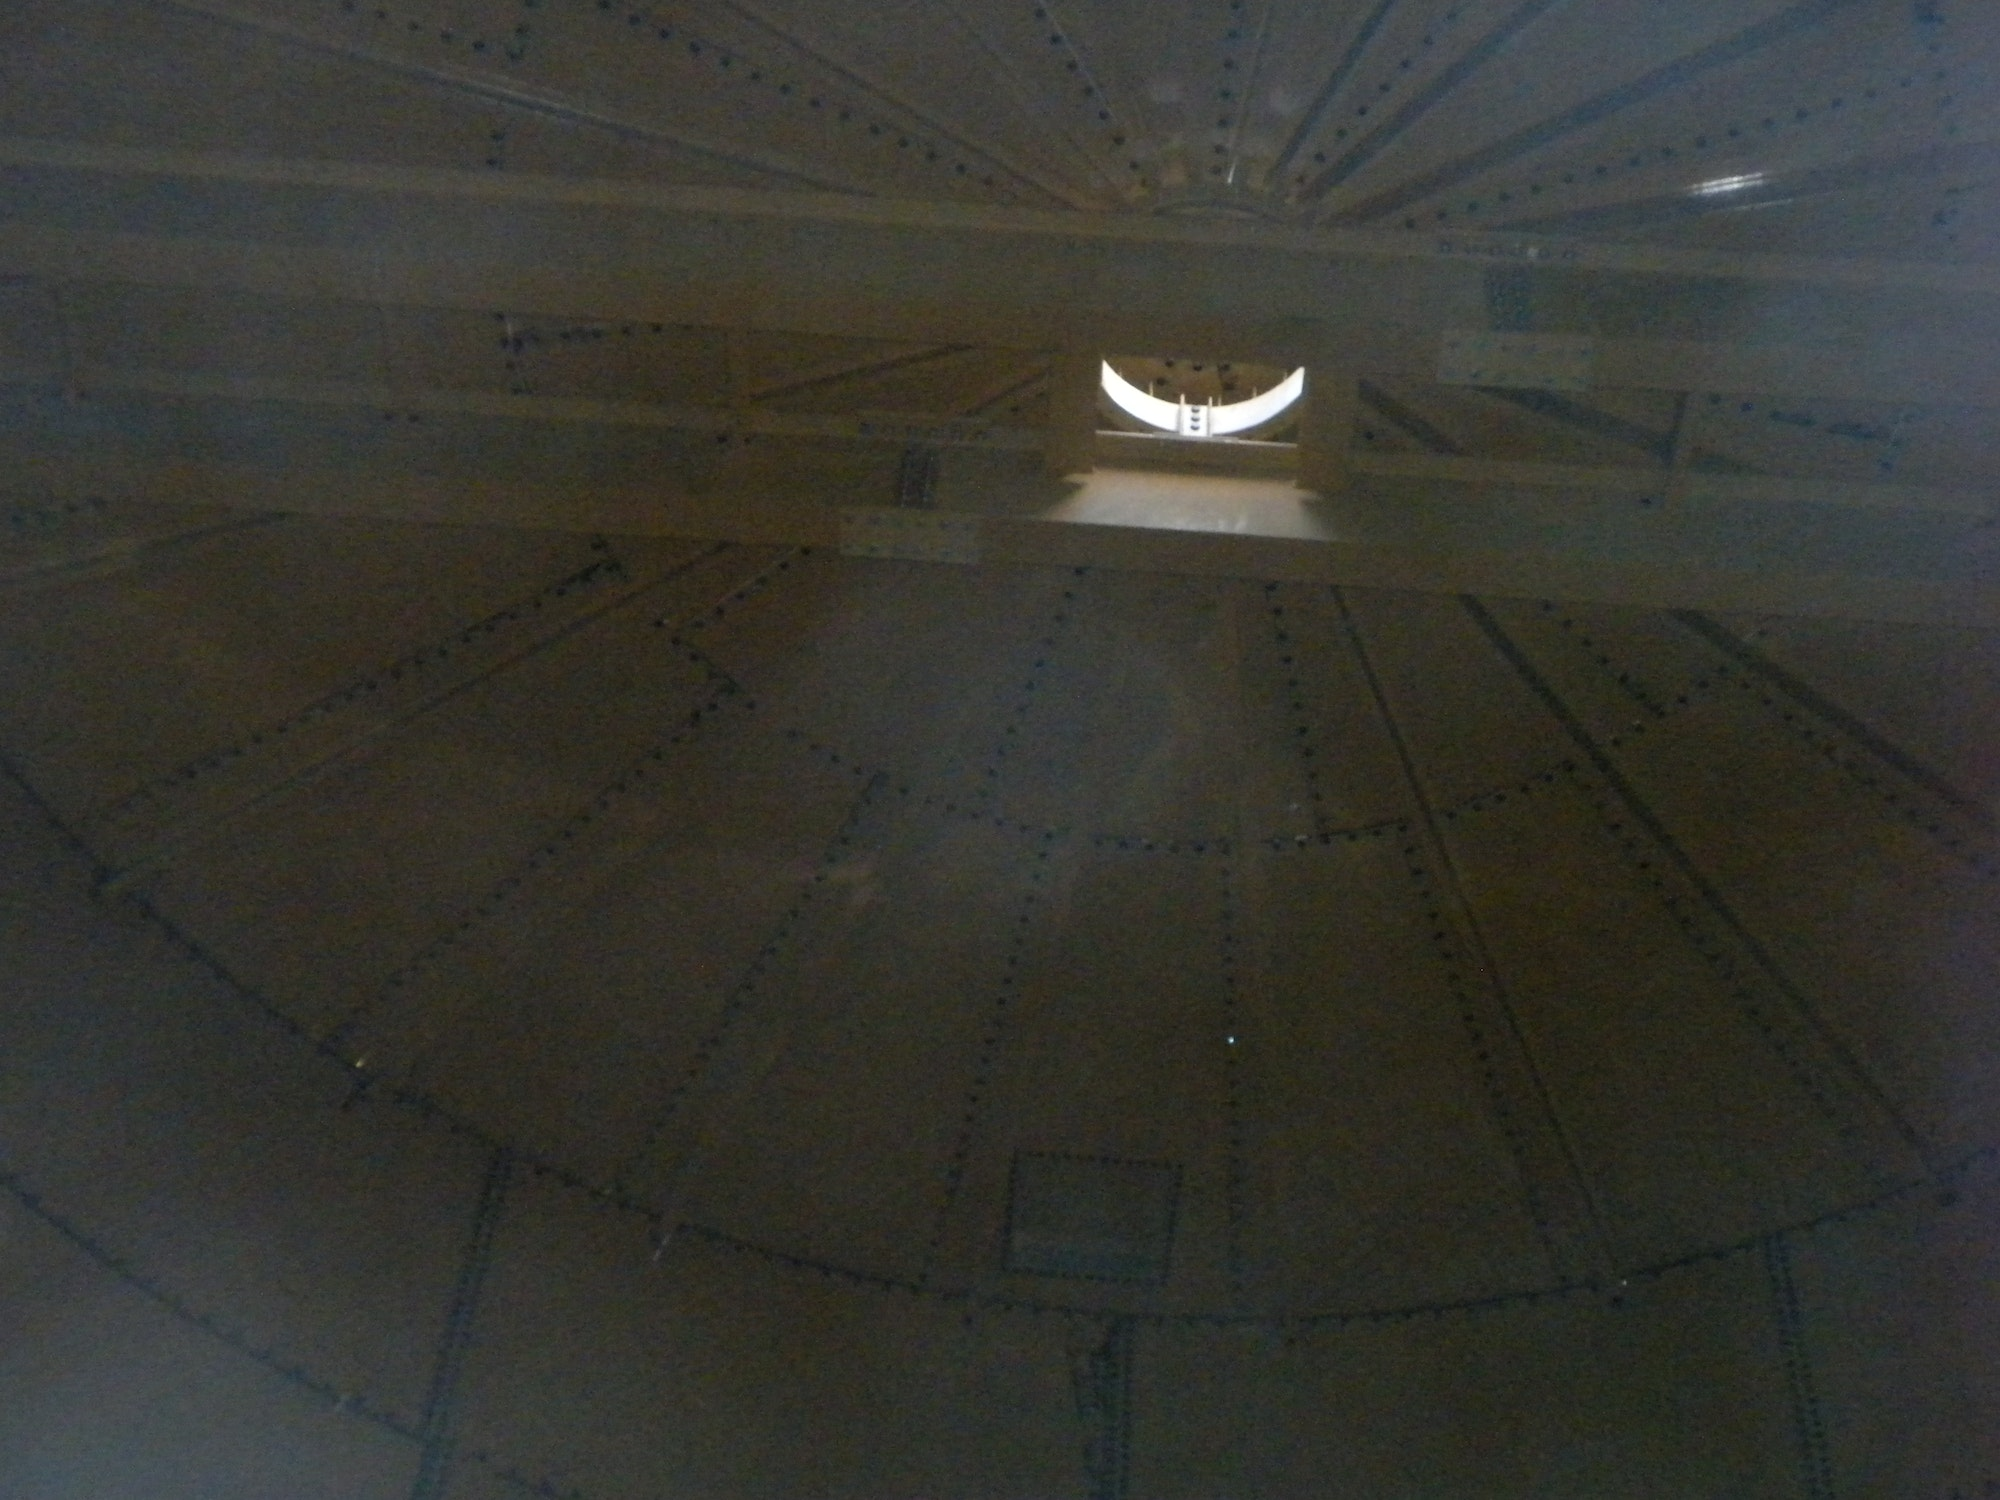 Nov. 7, 2018 looking up from inside the access hole.